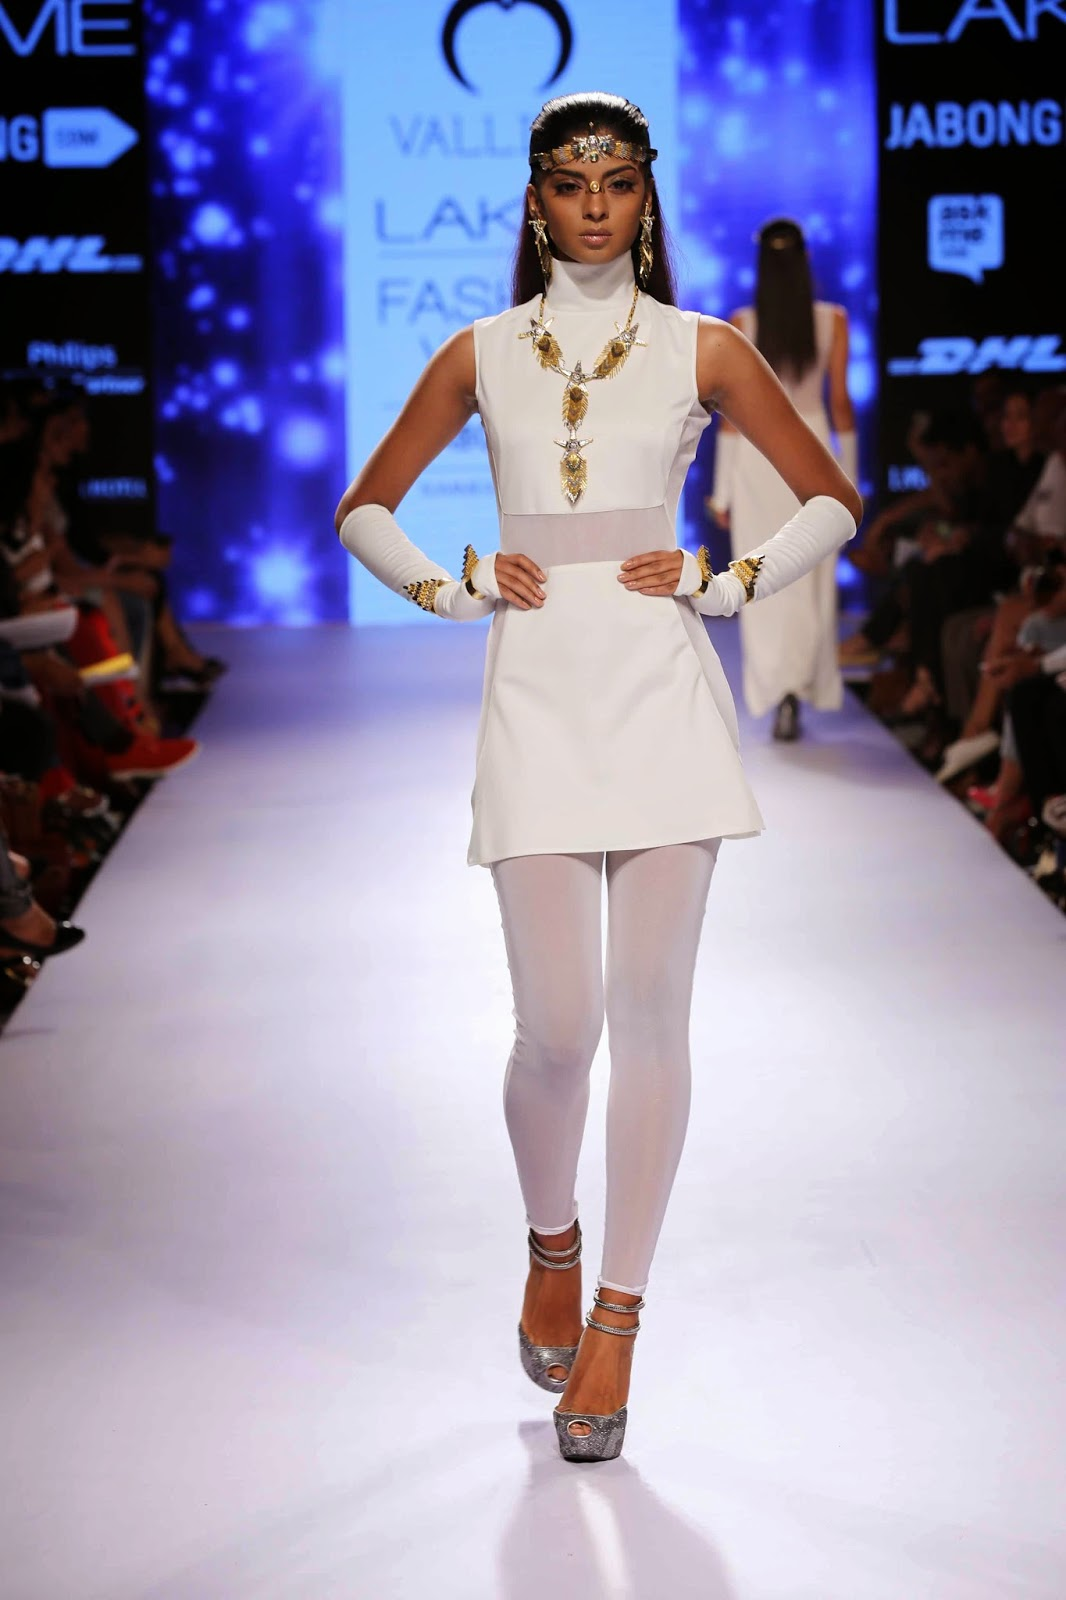 http://aquaintperspective.blogspot.in/,Nitya Arora's jewellery collection for her 'Valliyan'